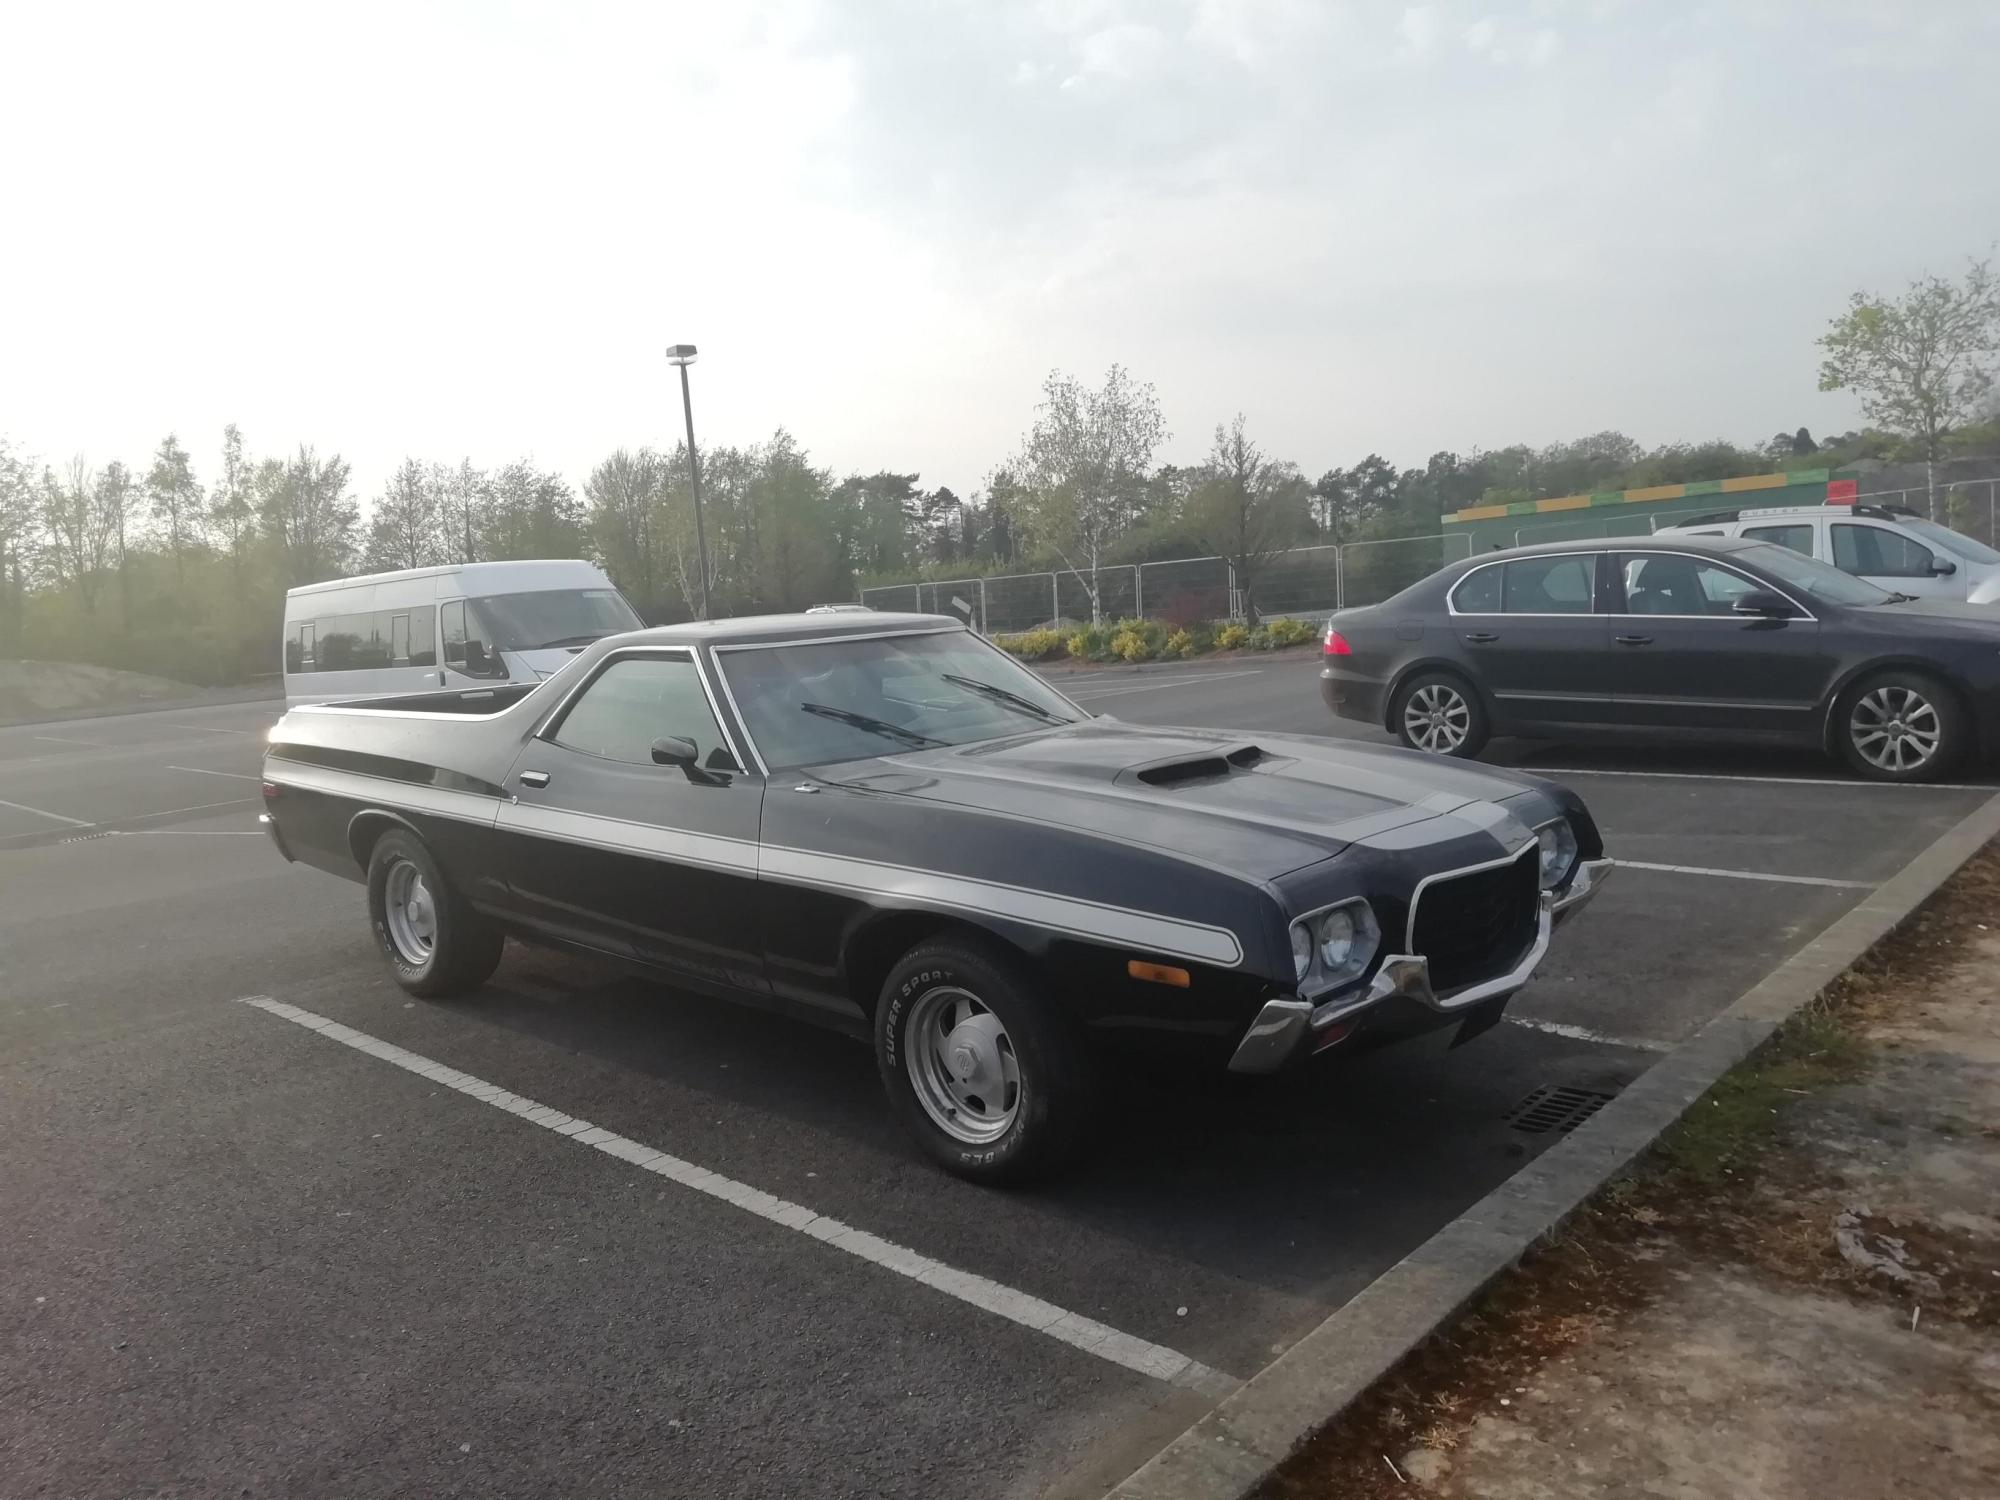 hight resolution of i know it s a 1972 ford ranchero gt but i wanted to know what these types of cars are called el camino utes etc